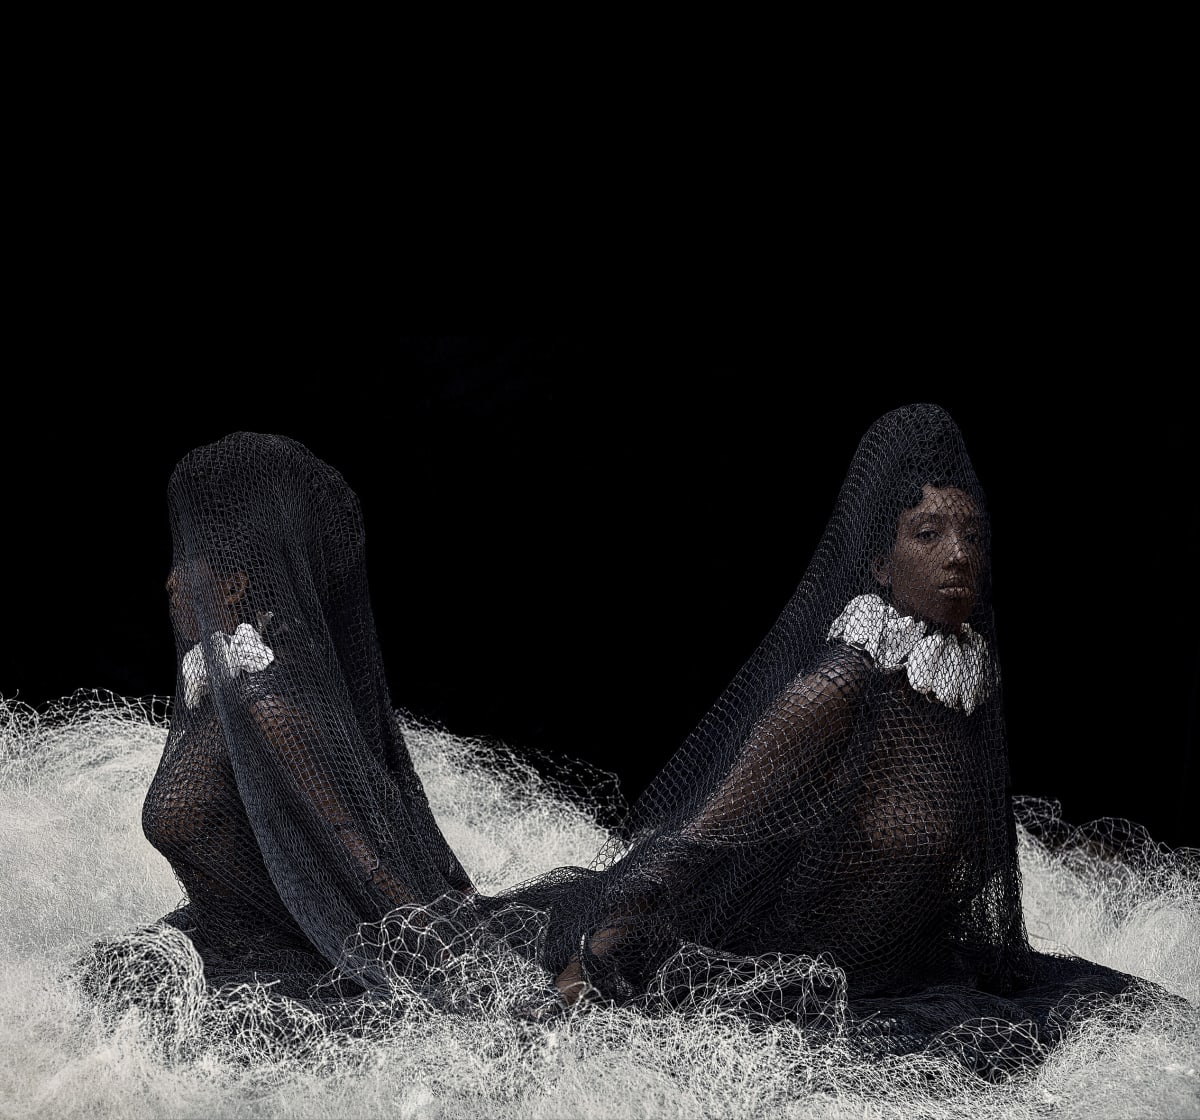 Ayana V. Jackson, Double Goddess...A Sighting in the Abyss, 2019. Courtesy of the Artist and Mariane Ibrahim Gallery